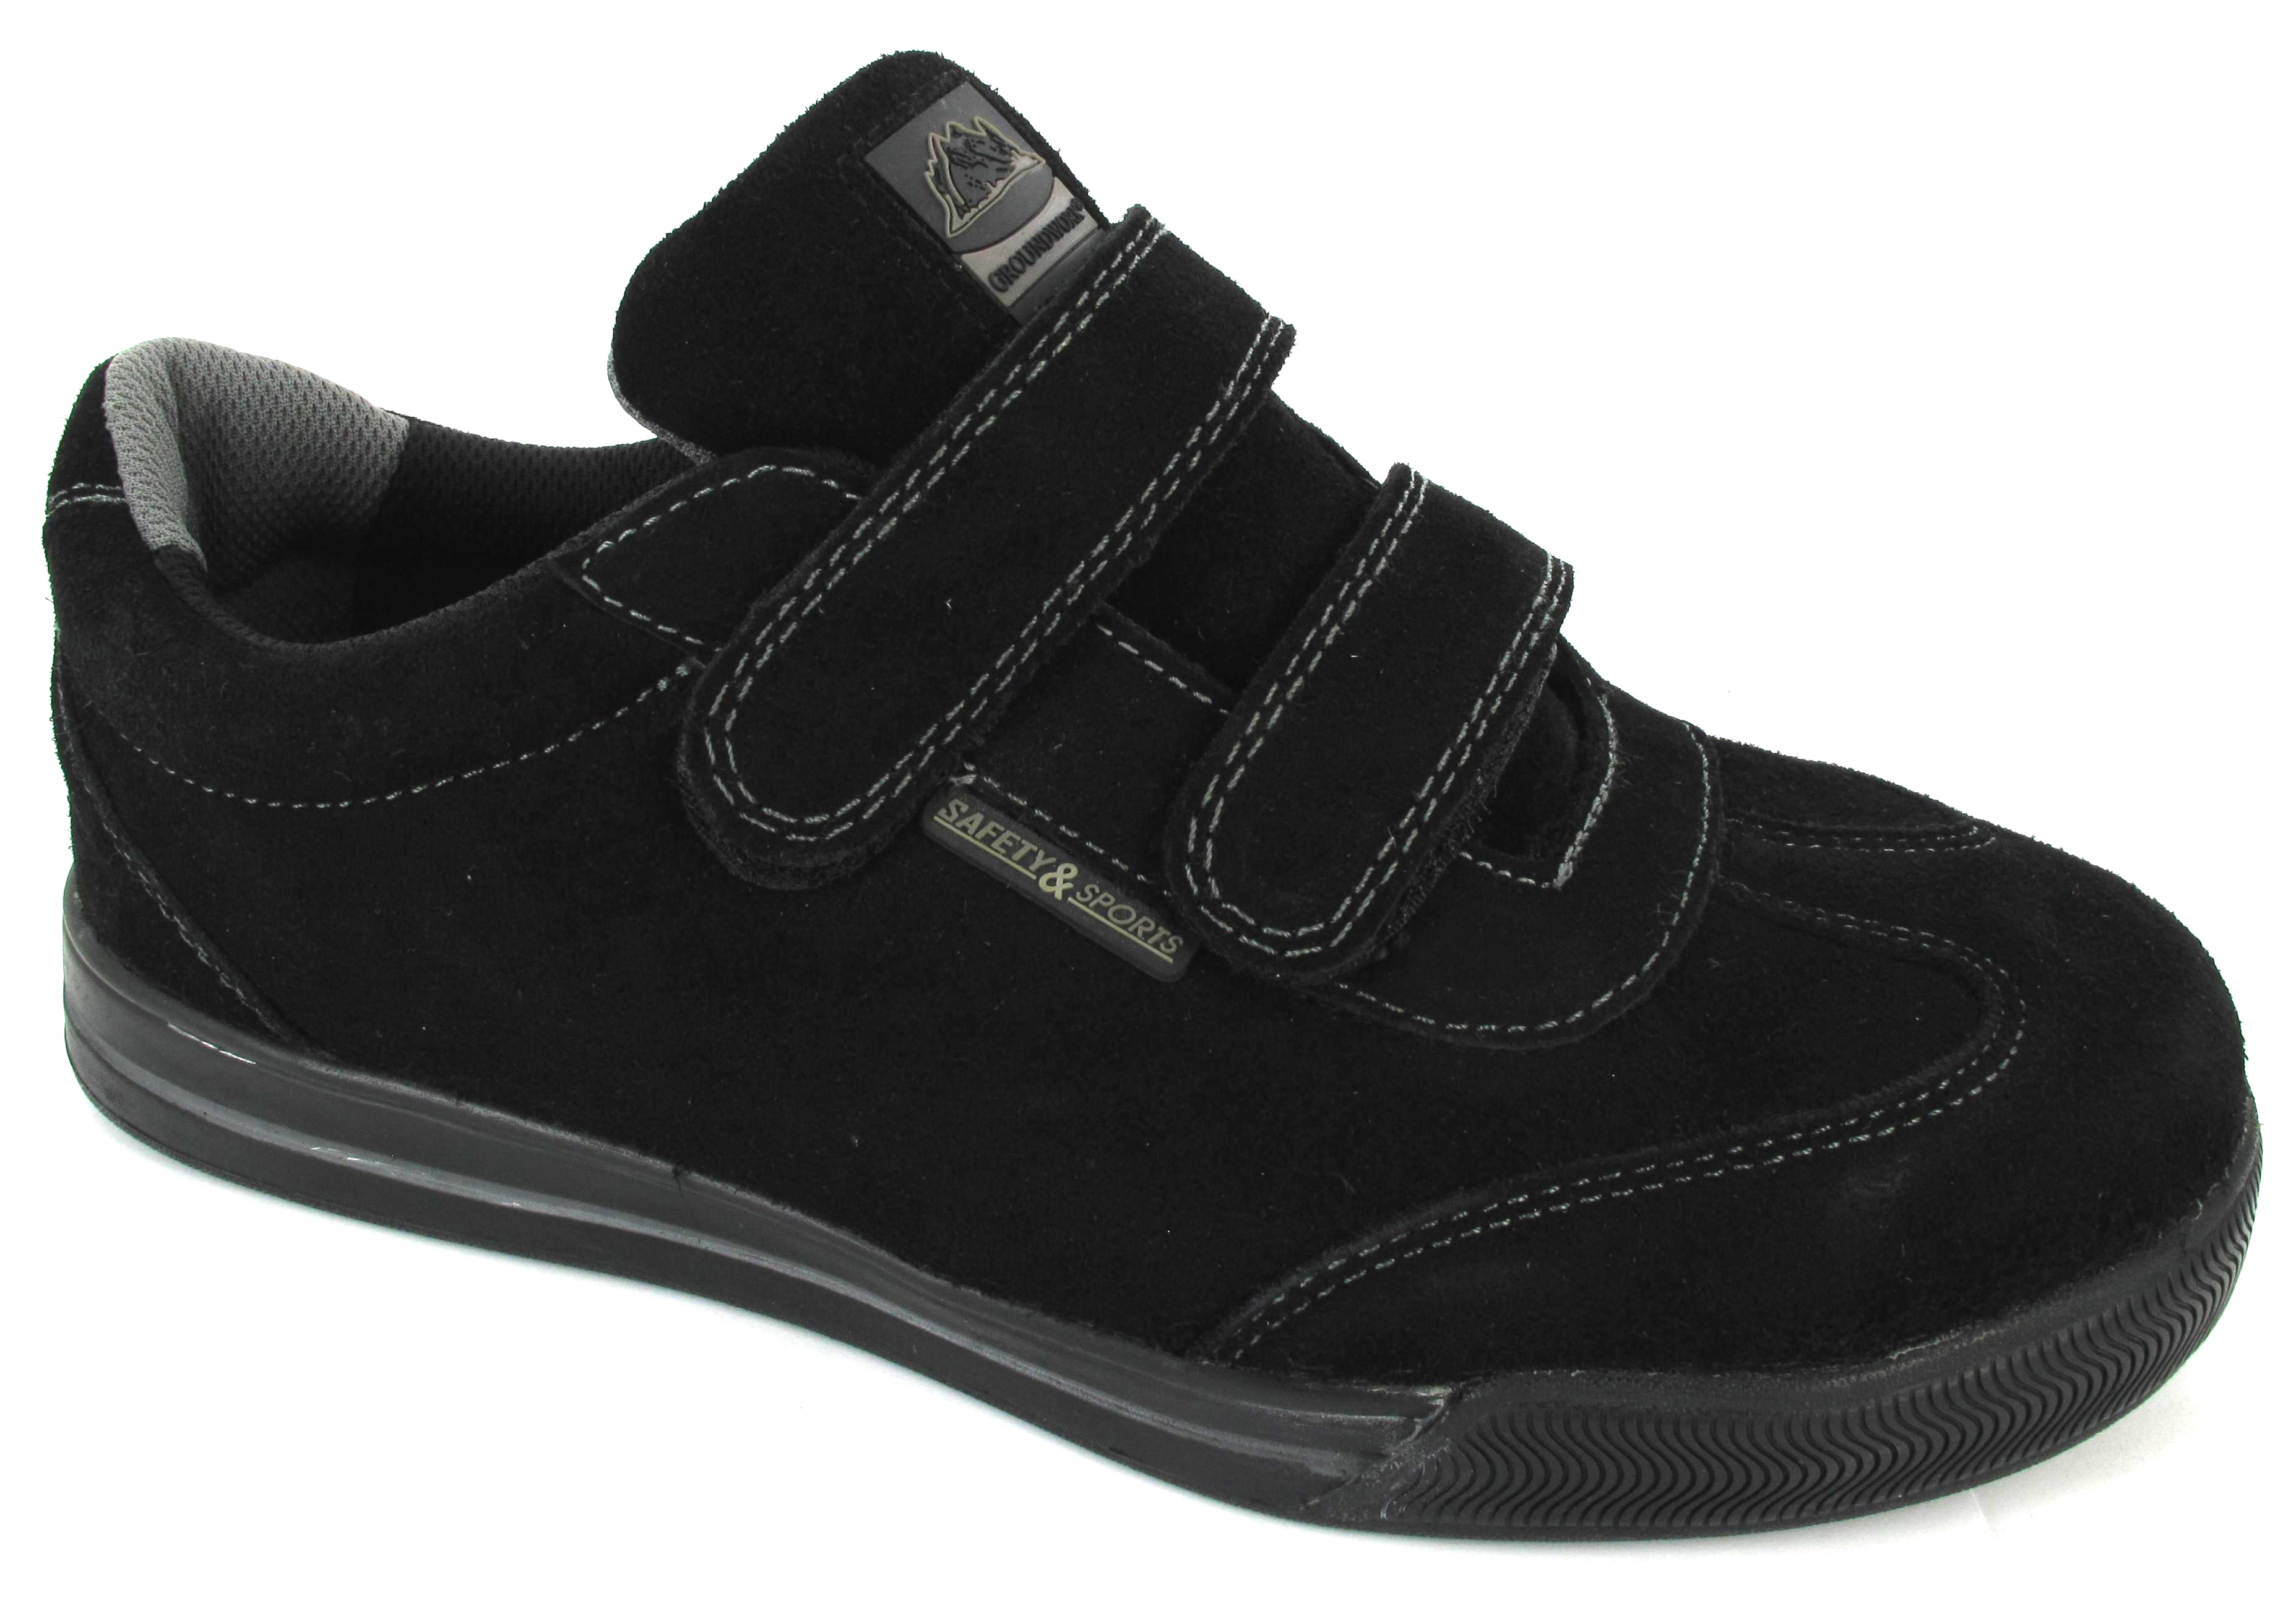 MENS-STEEL-TOE-CAP-SAFETY-VELCRO-WORK-LEATHER-LIGHTWEIGHT-TRAINERS-SHOES-SIZE